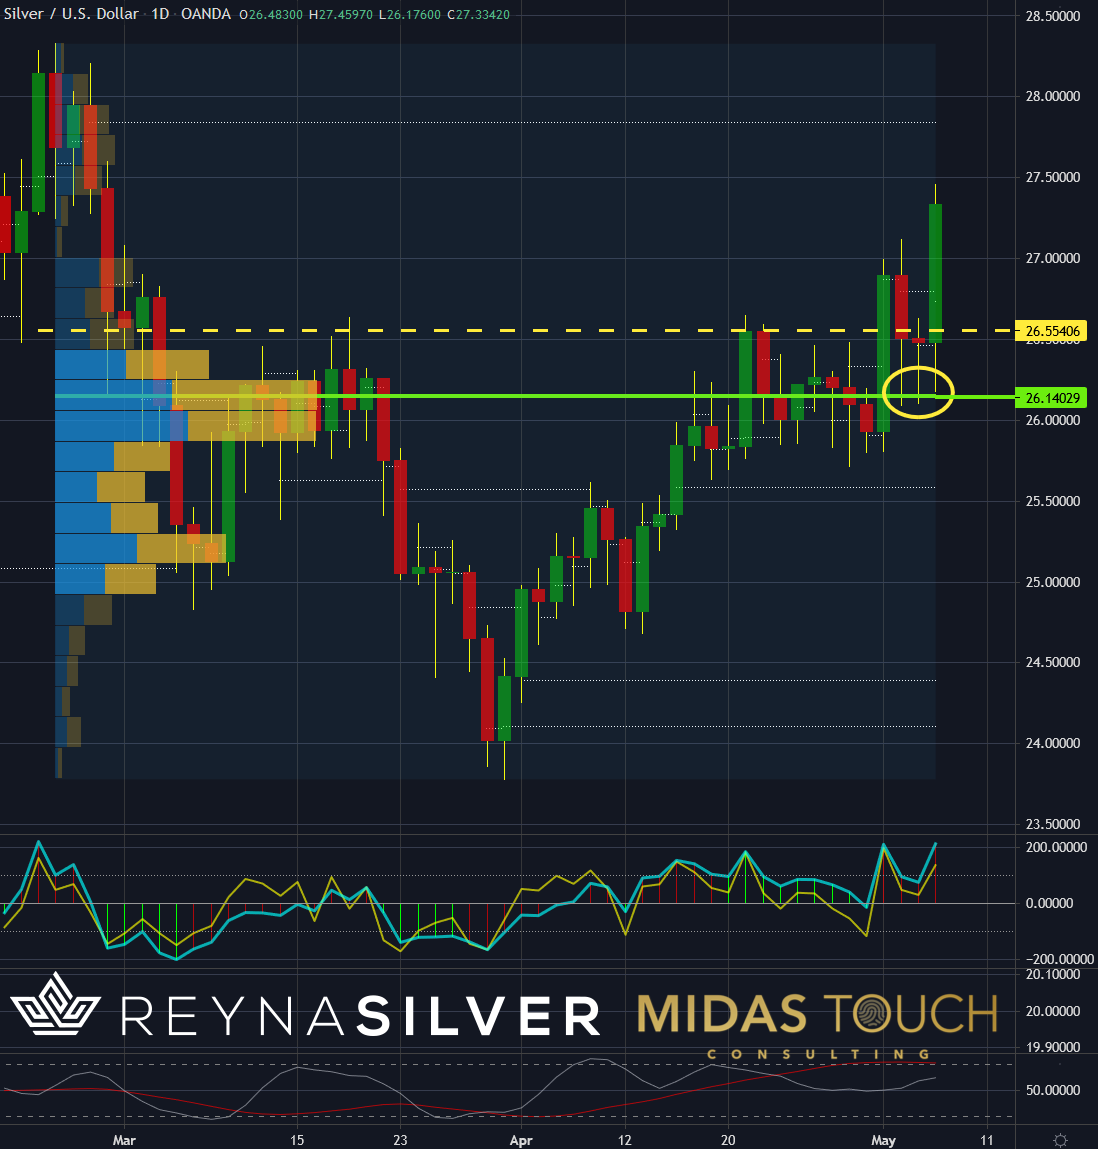 Silver in US-Dollar, daily chart as of May 6th, 2021.